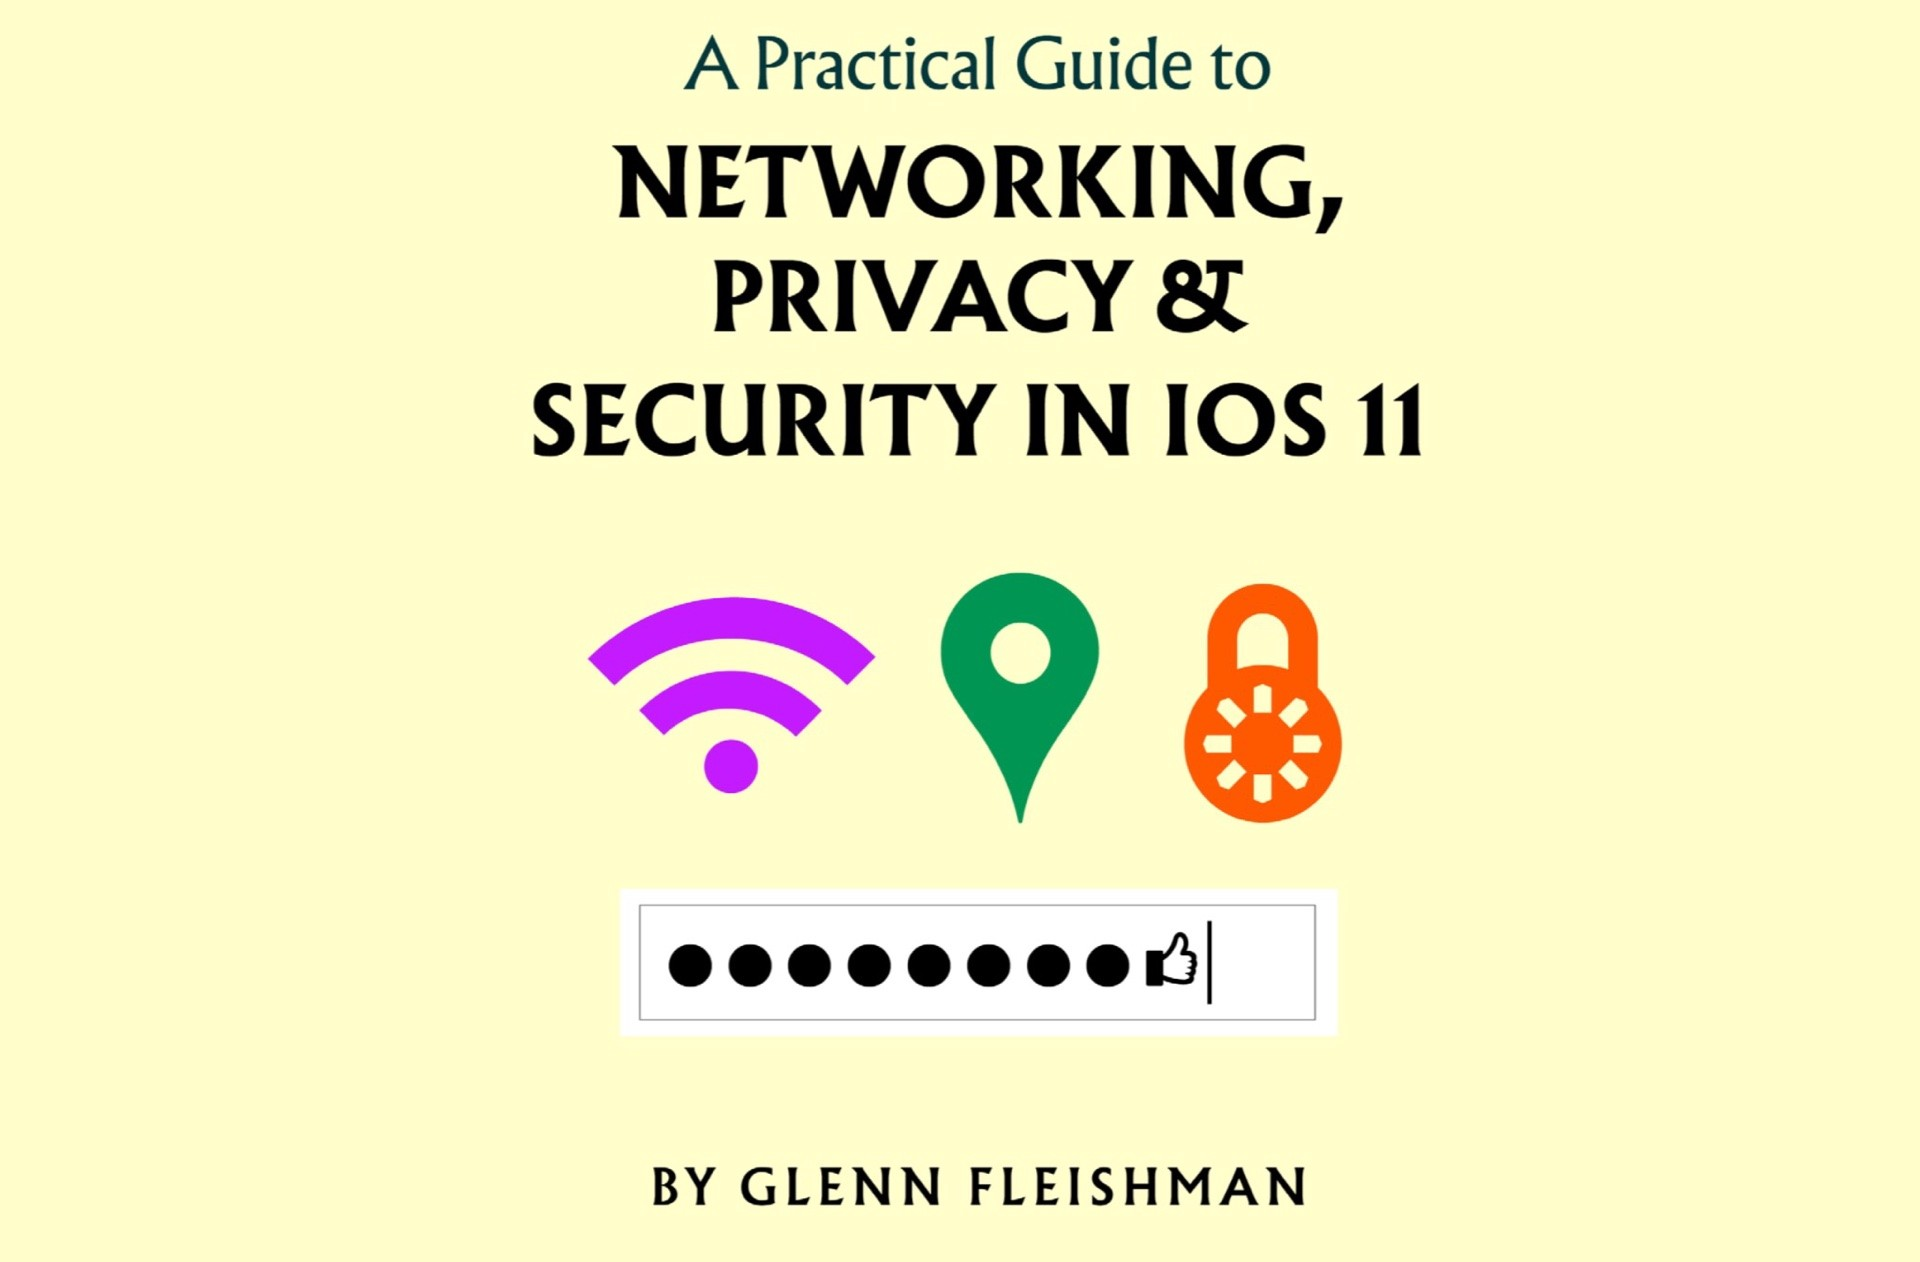 a-practical-guide-to-networking-privacy-and-security-in-ios-11-by-glenn-fleishman